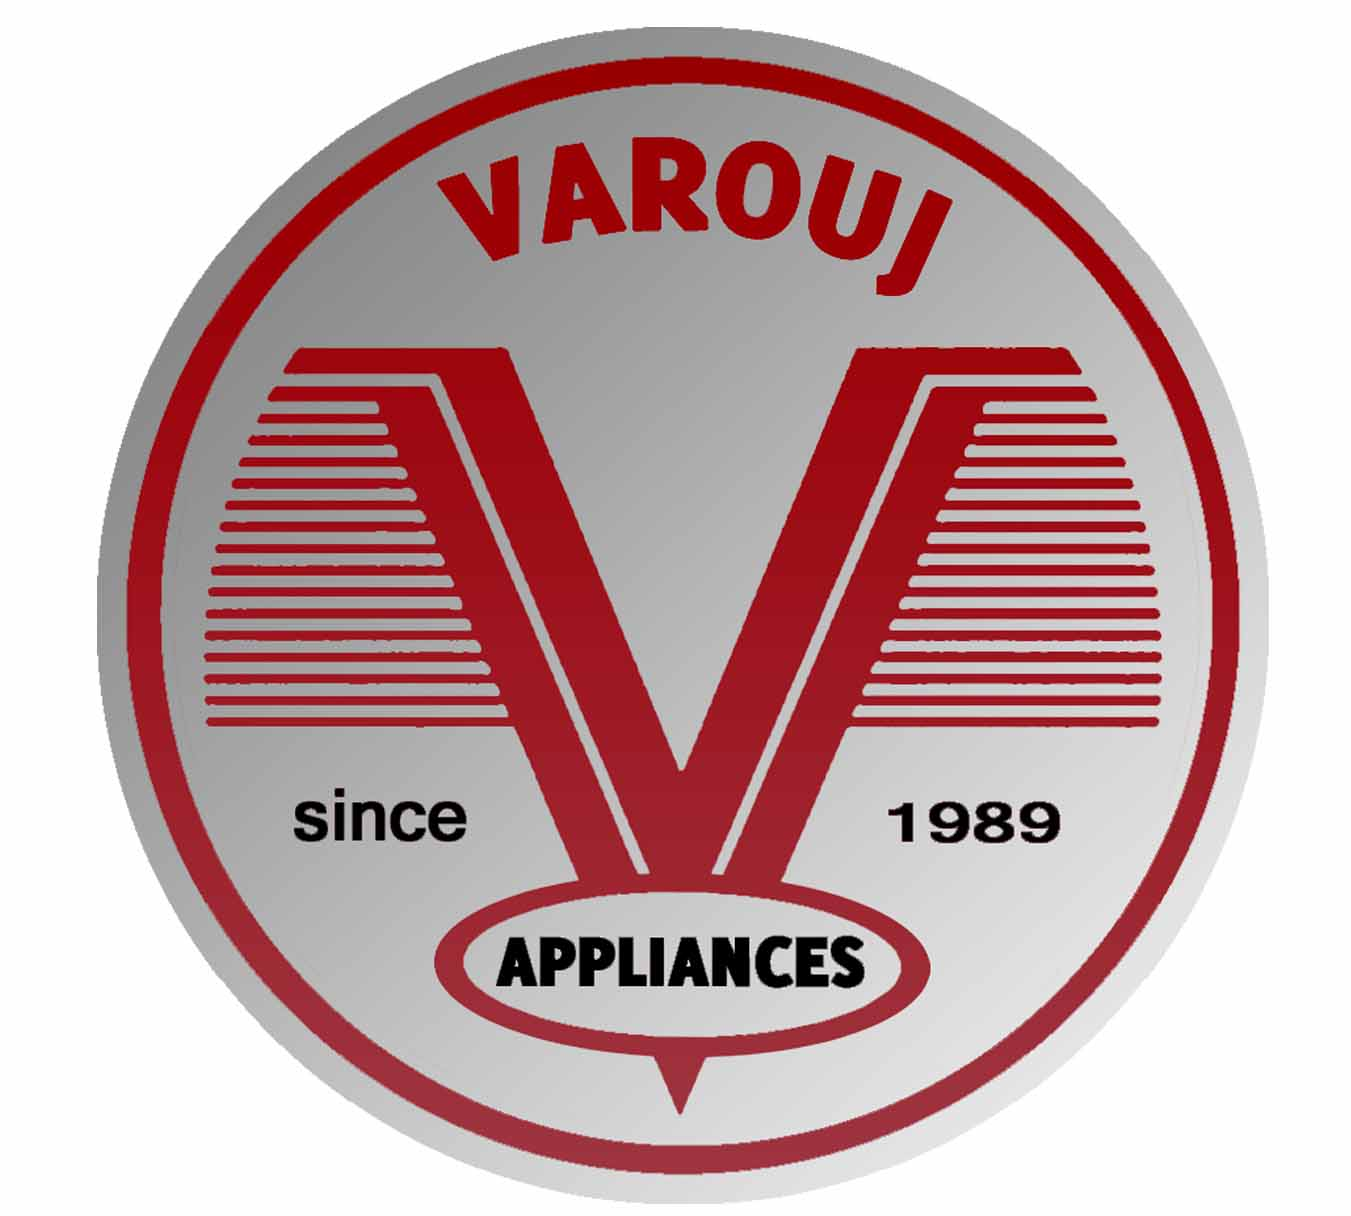 Varoujappliance